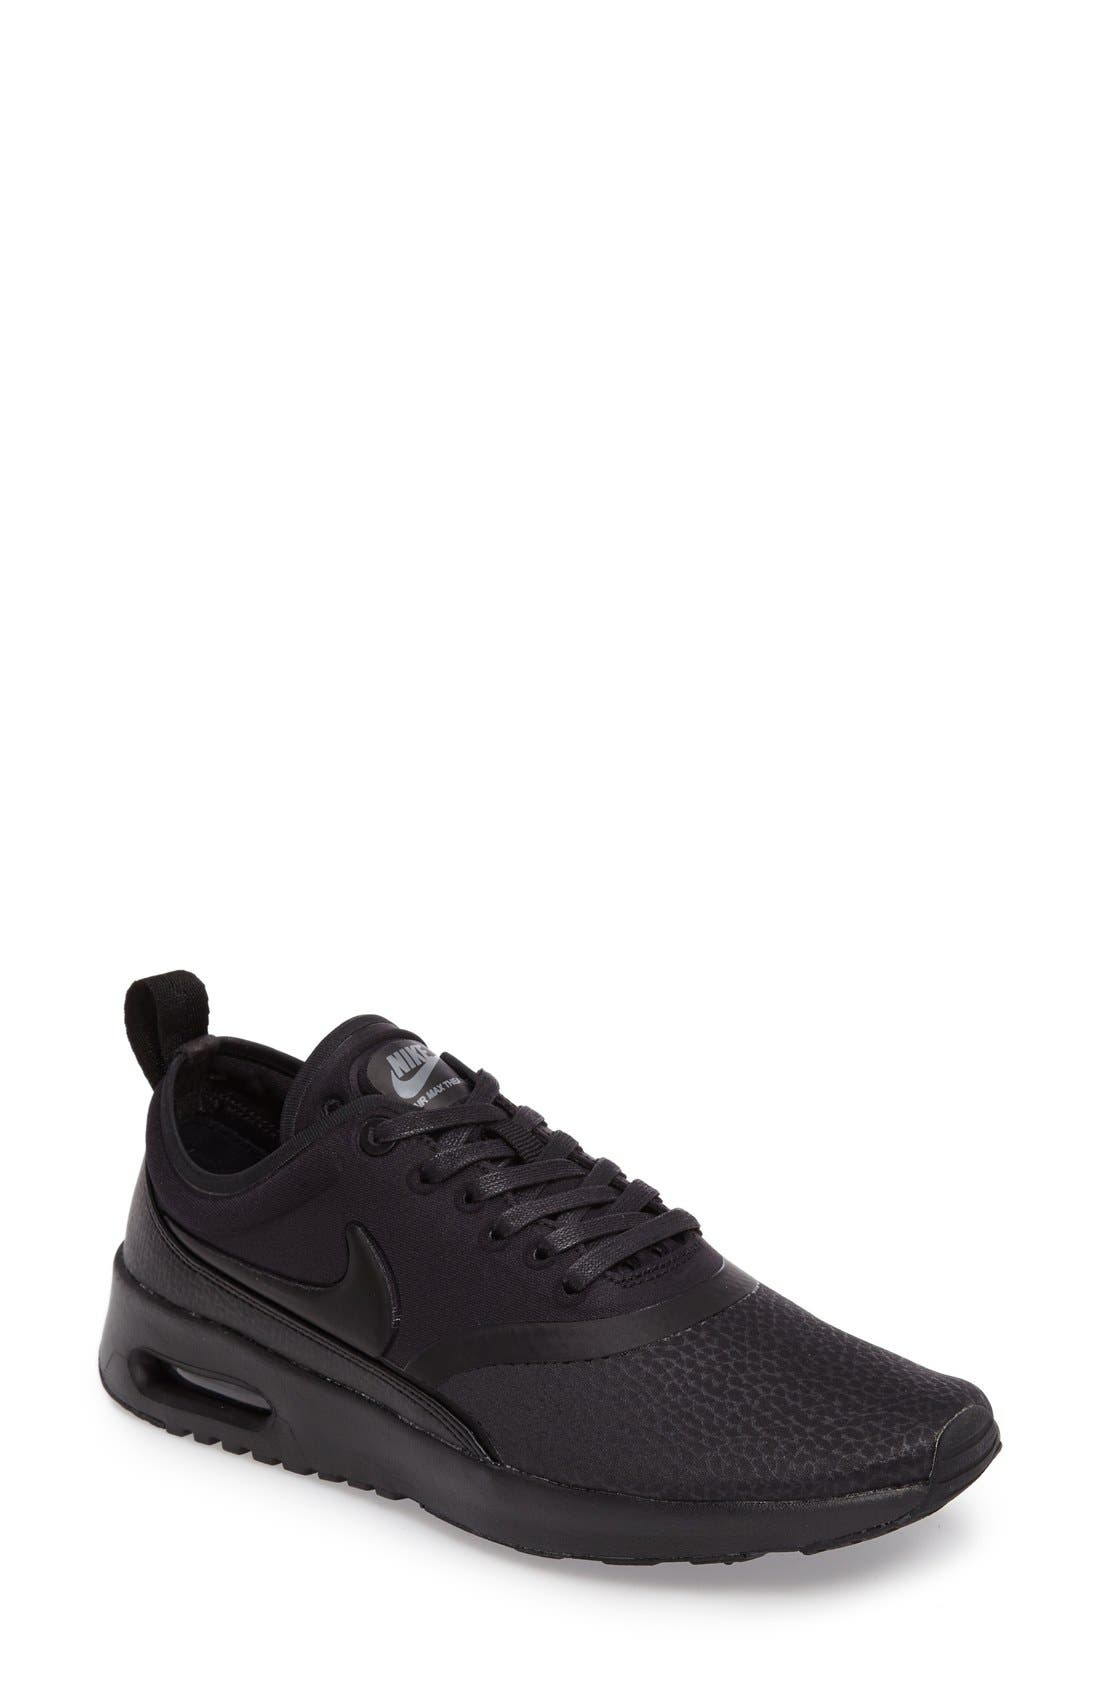 Alternate Image 1 Selected - Nike Air Max Thea Ultra Premium Sneaker (Women)